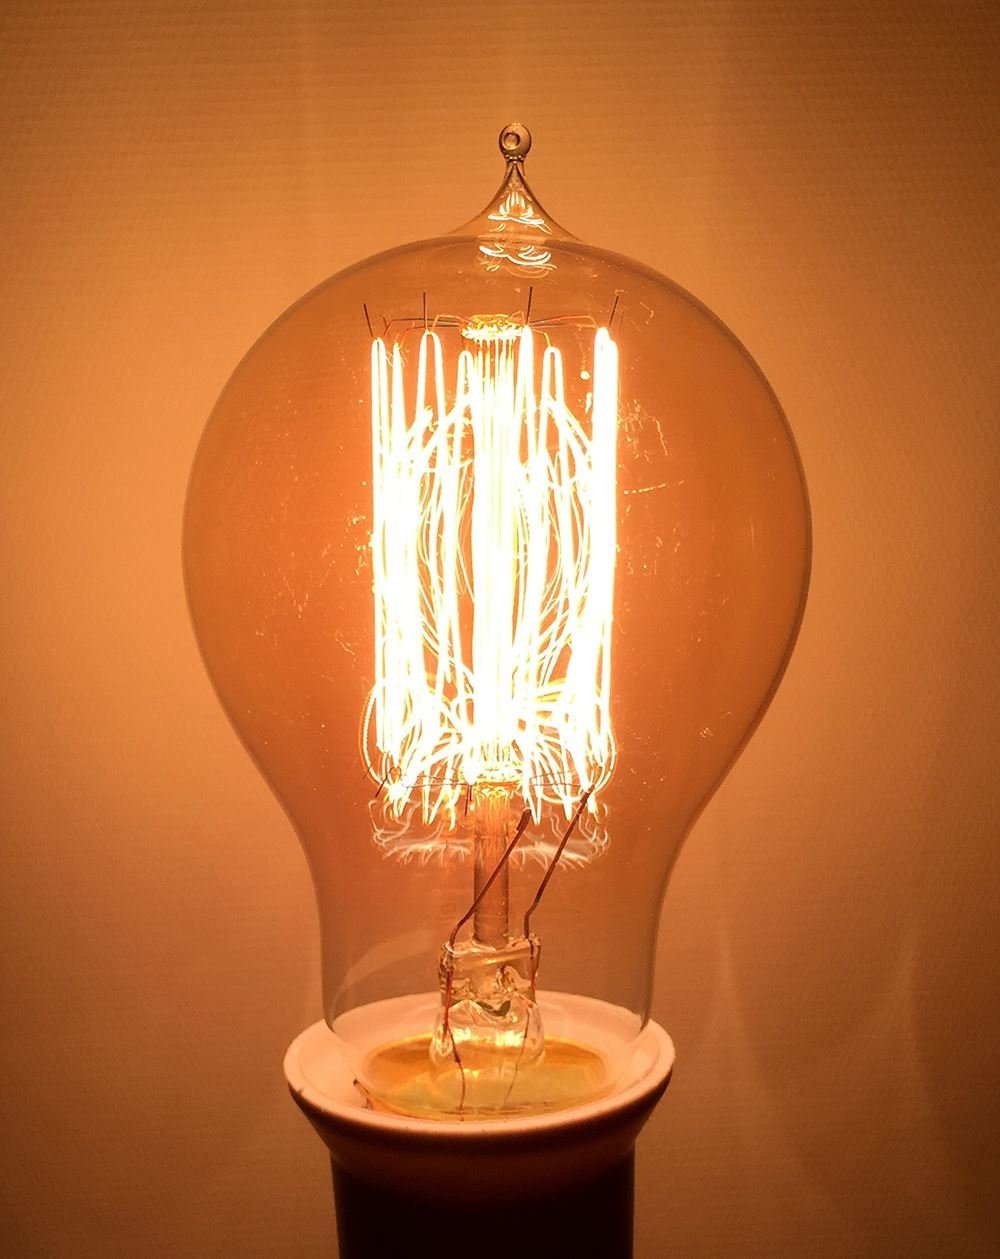 8 X Dimmable Vintage Retro Style Edison Bulbs Industrial GLS Globe Shape A60 Squirrel Cage Screw Filament Amber Glass Antique Decorative Light ES E27 2700K Warm White 40W